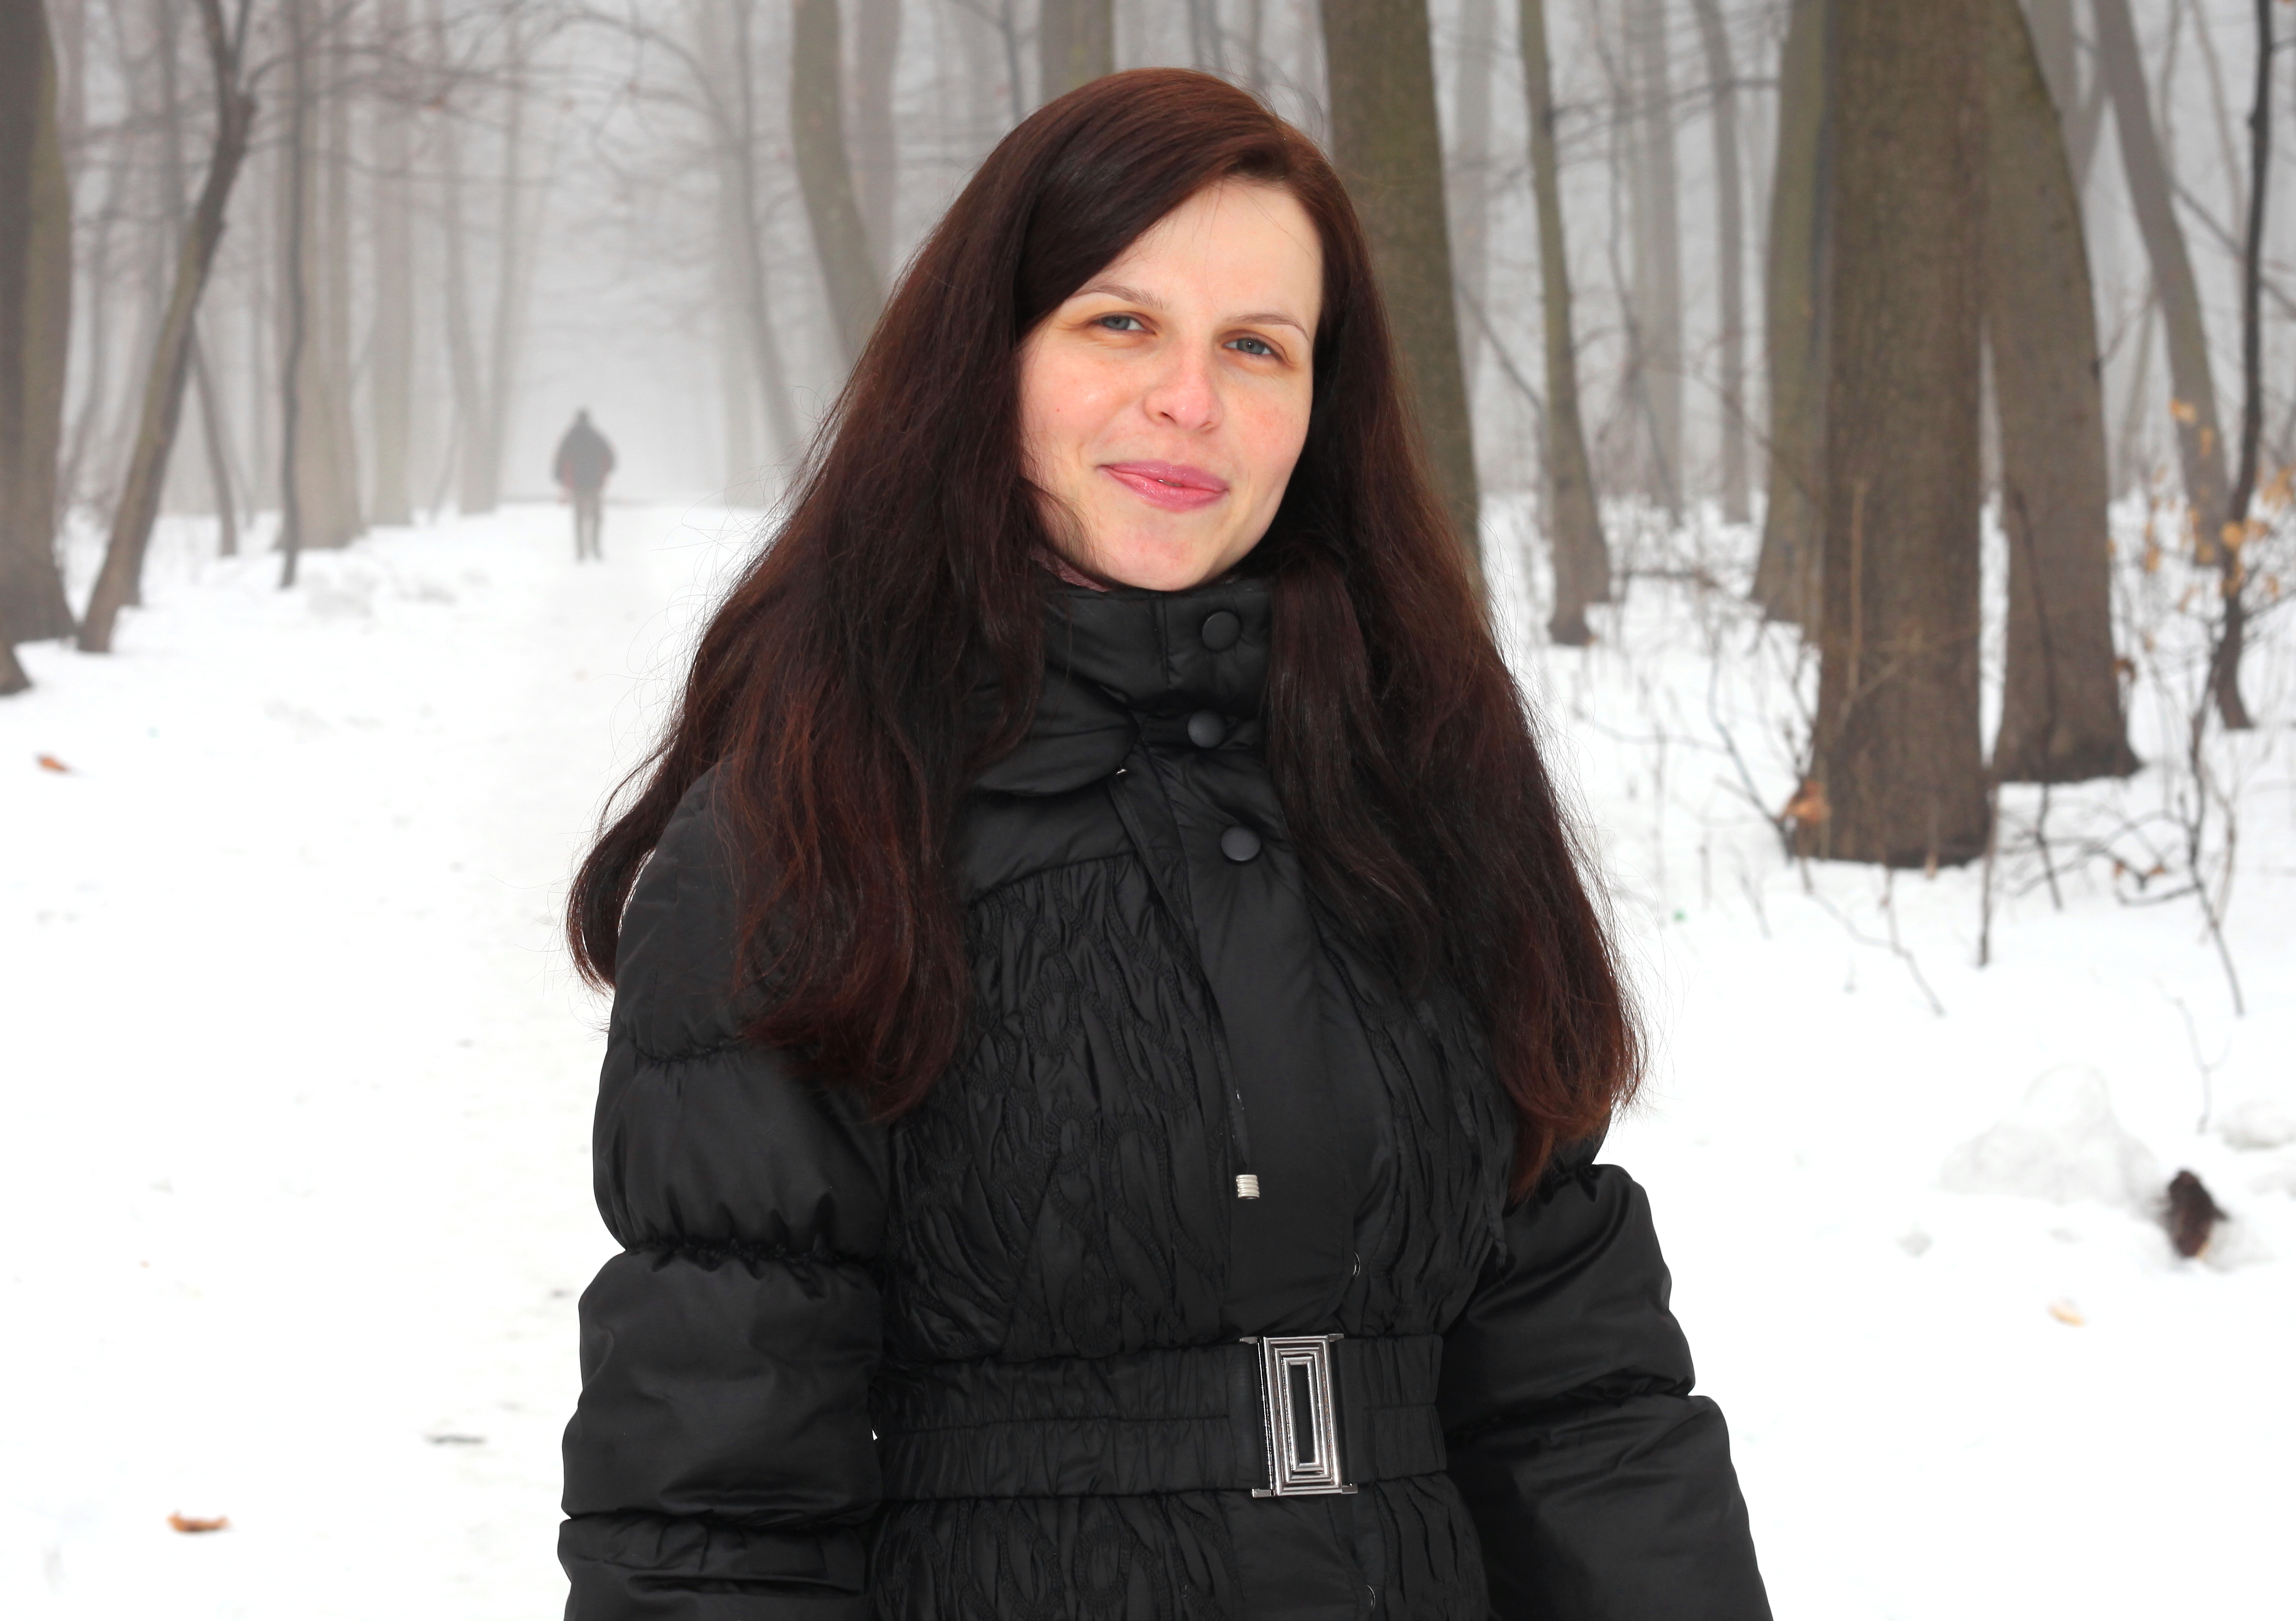 an amazingly beautiful charming Catholic woman with cute lips in a forest, picture 11